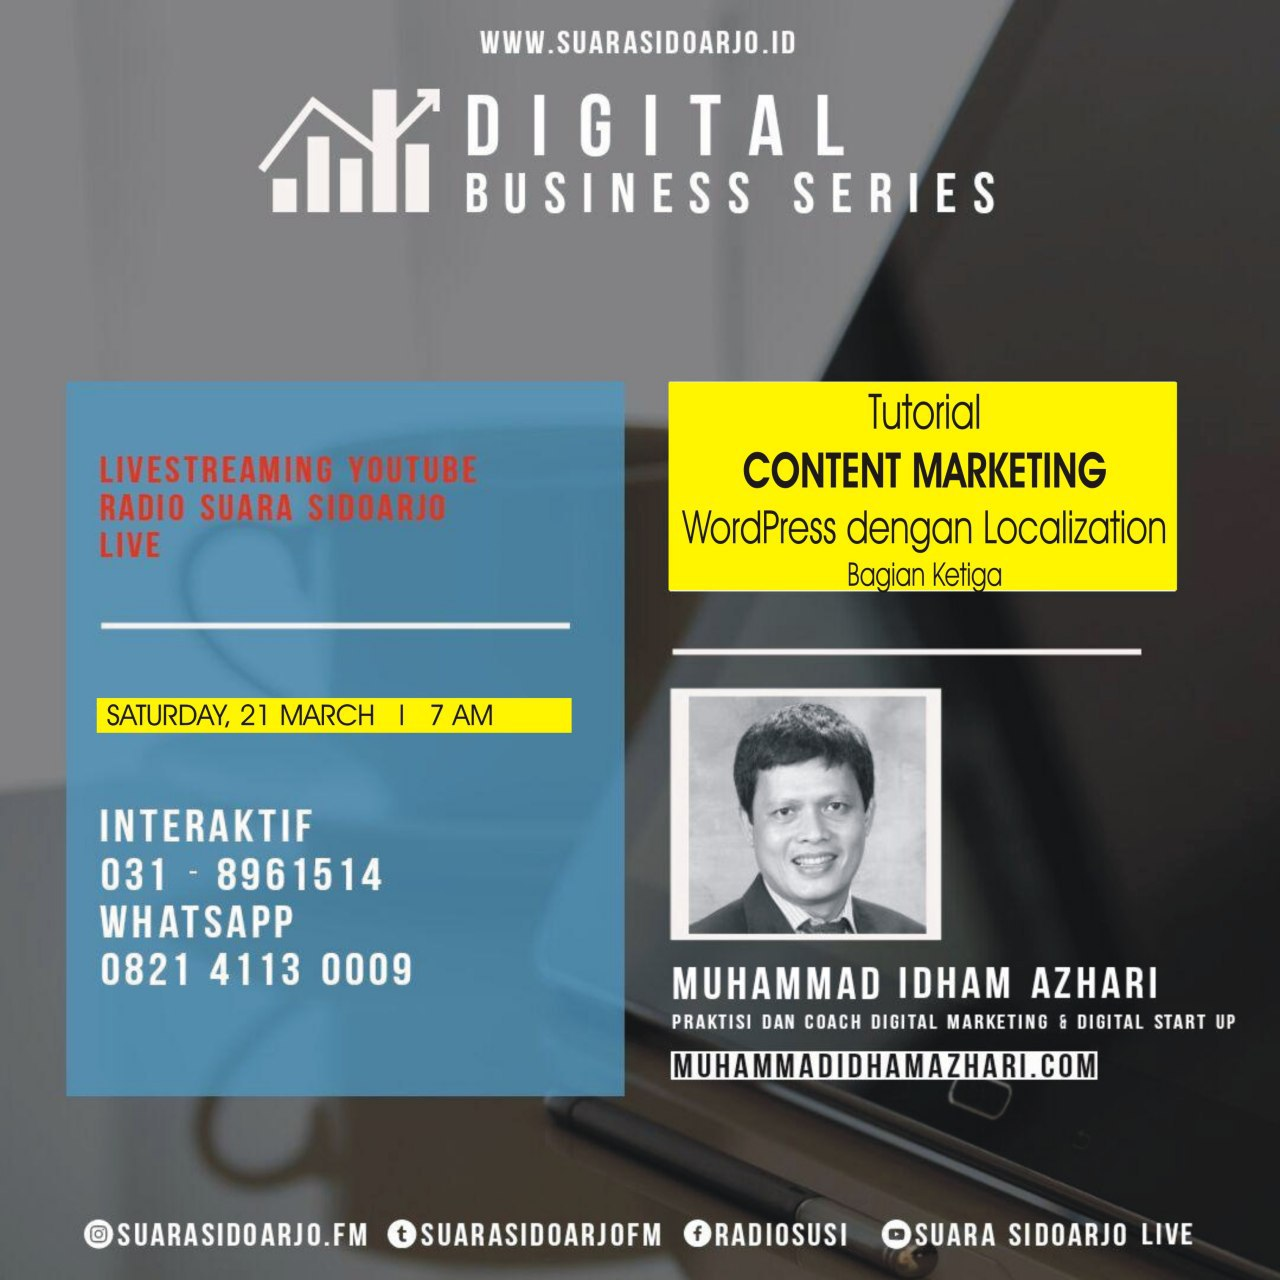 Tutotial CONTENT MARKETING WordPress dengan Localization - Bagian Ketiga by Muhammad Idham Azhari